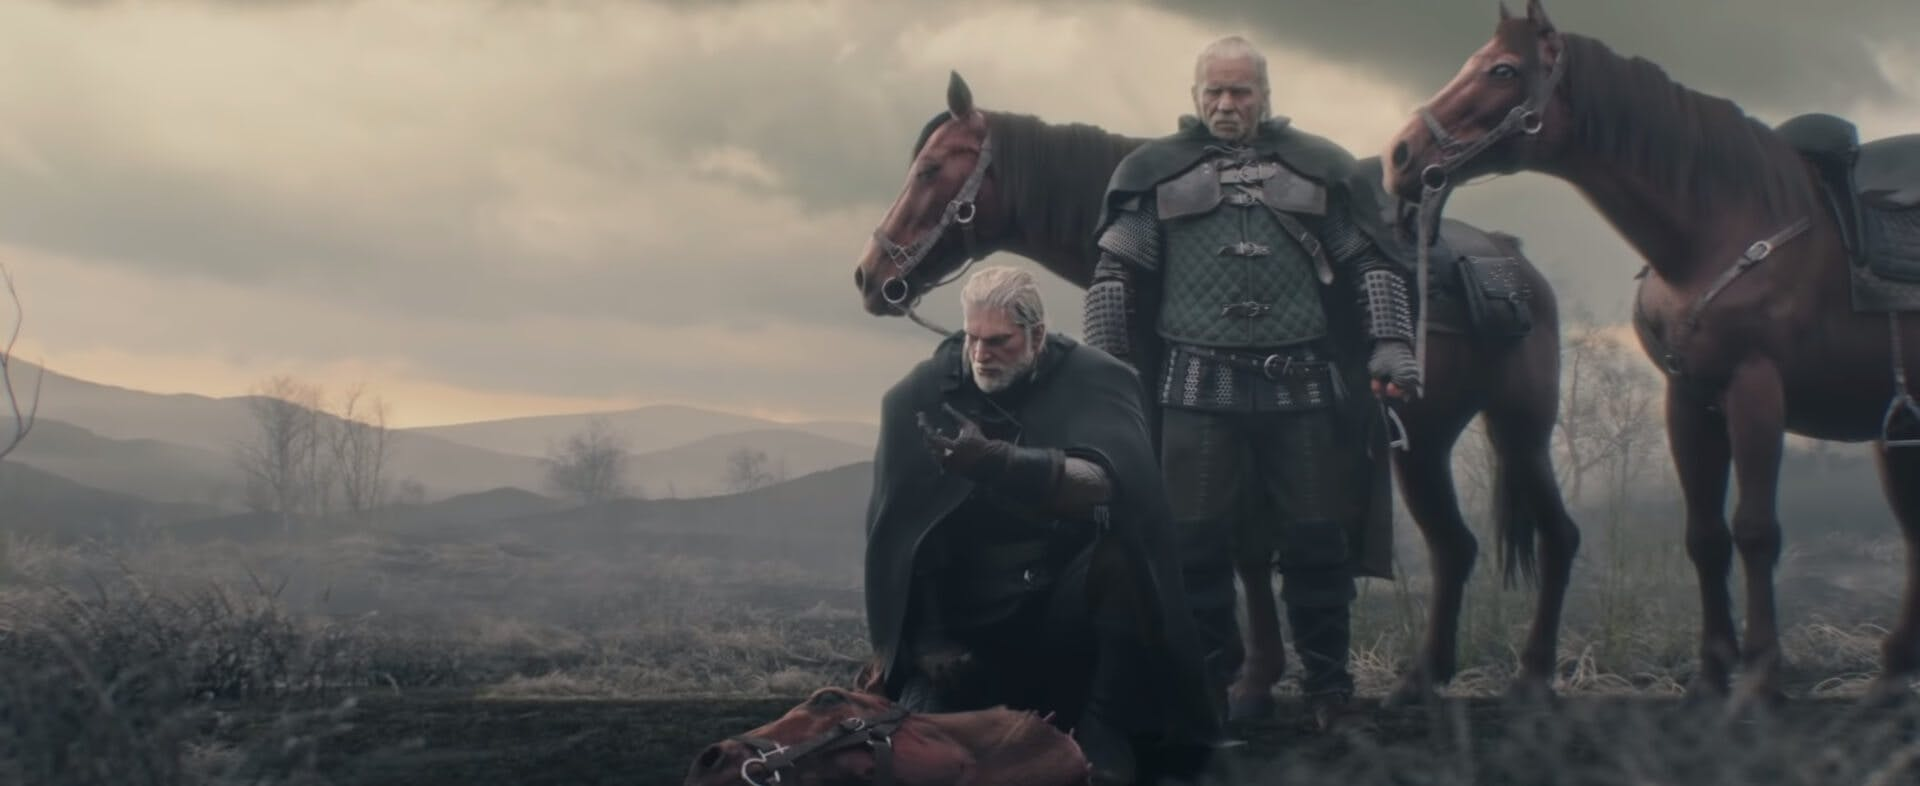 The Witcher - video games